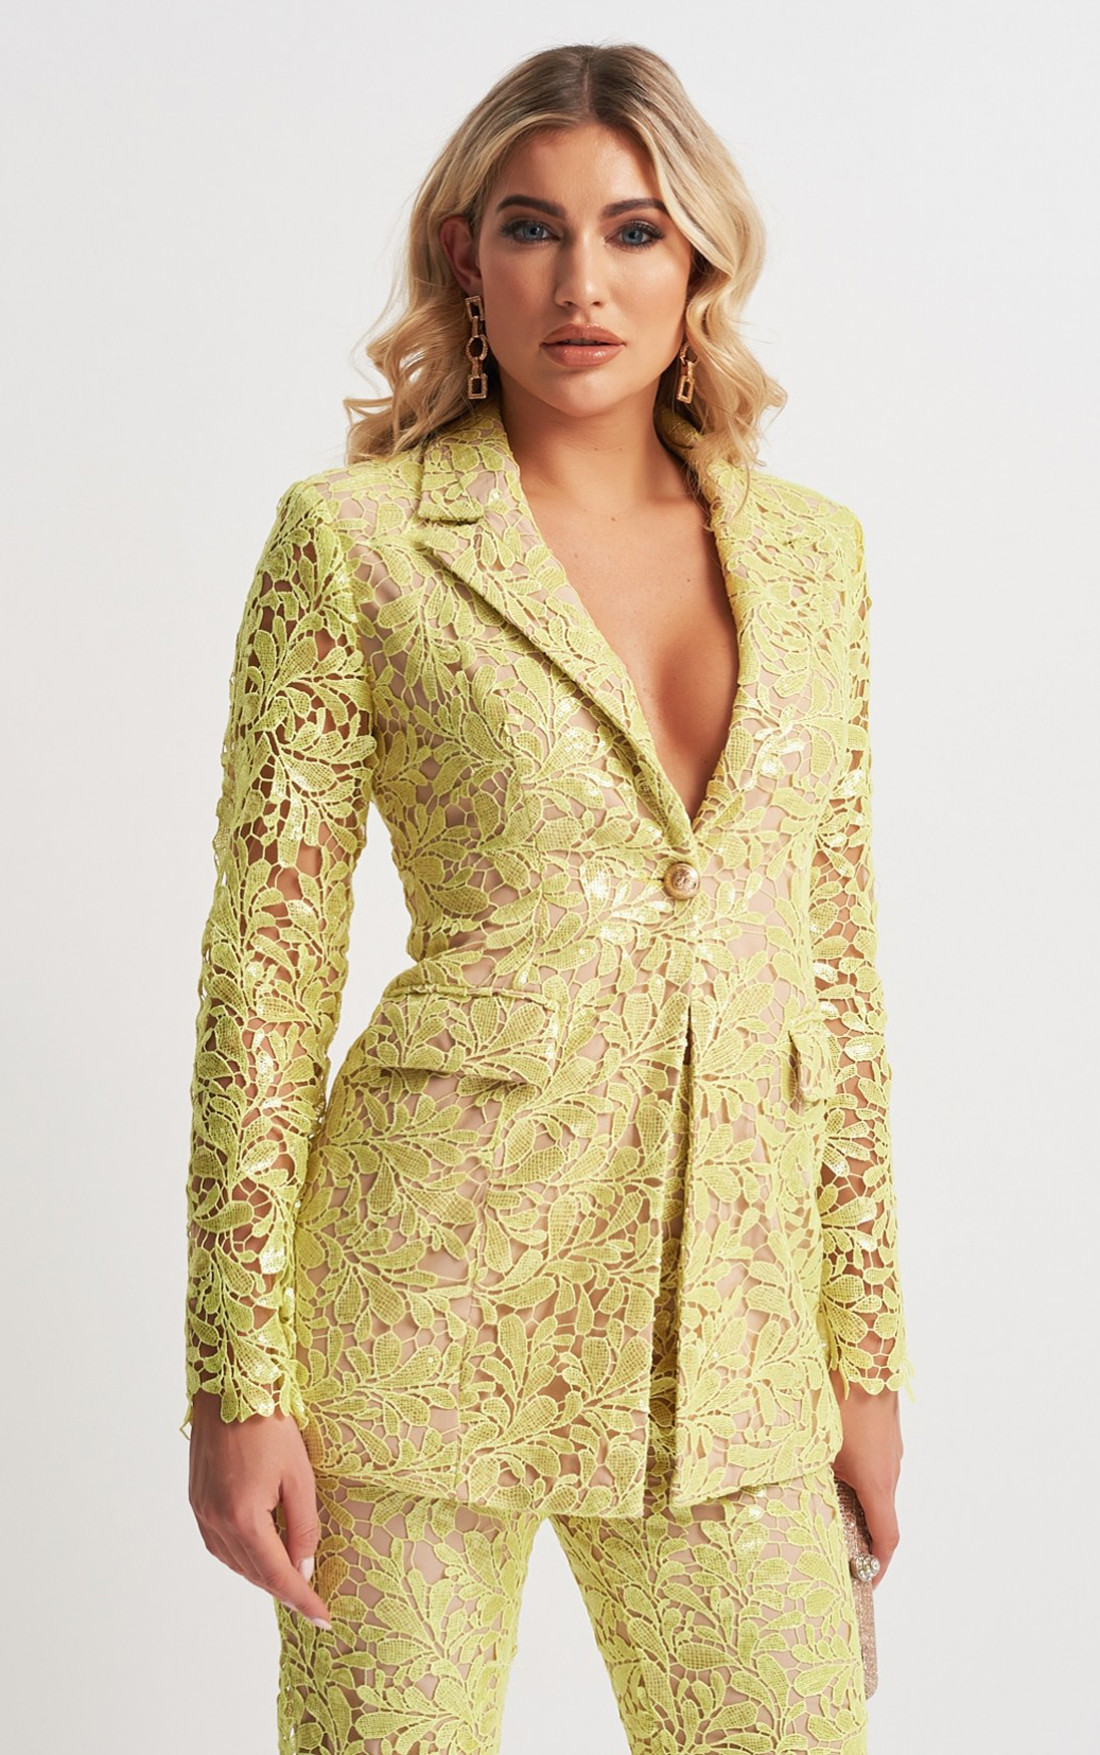 Forever Unique - Kimberley Lime Floral Lace Sequin Suit Jacket (MN201156)